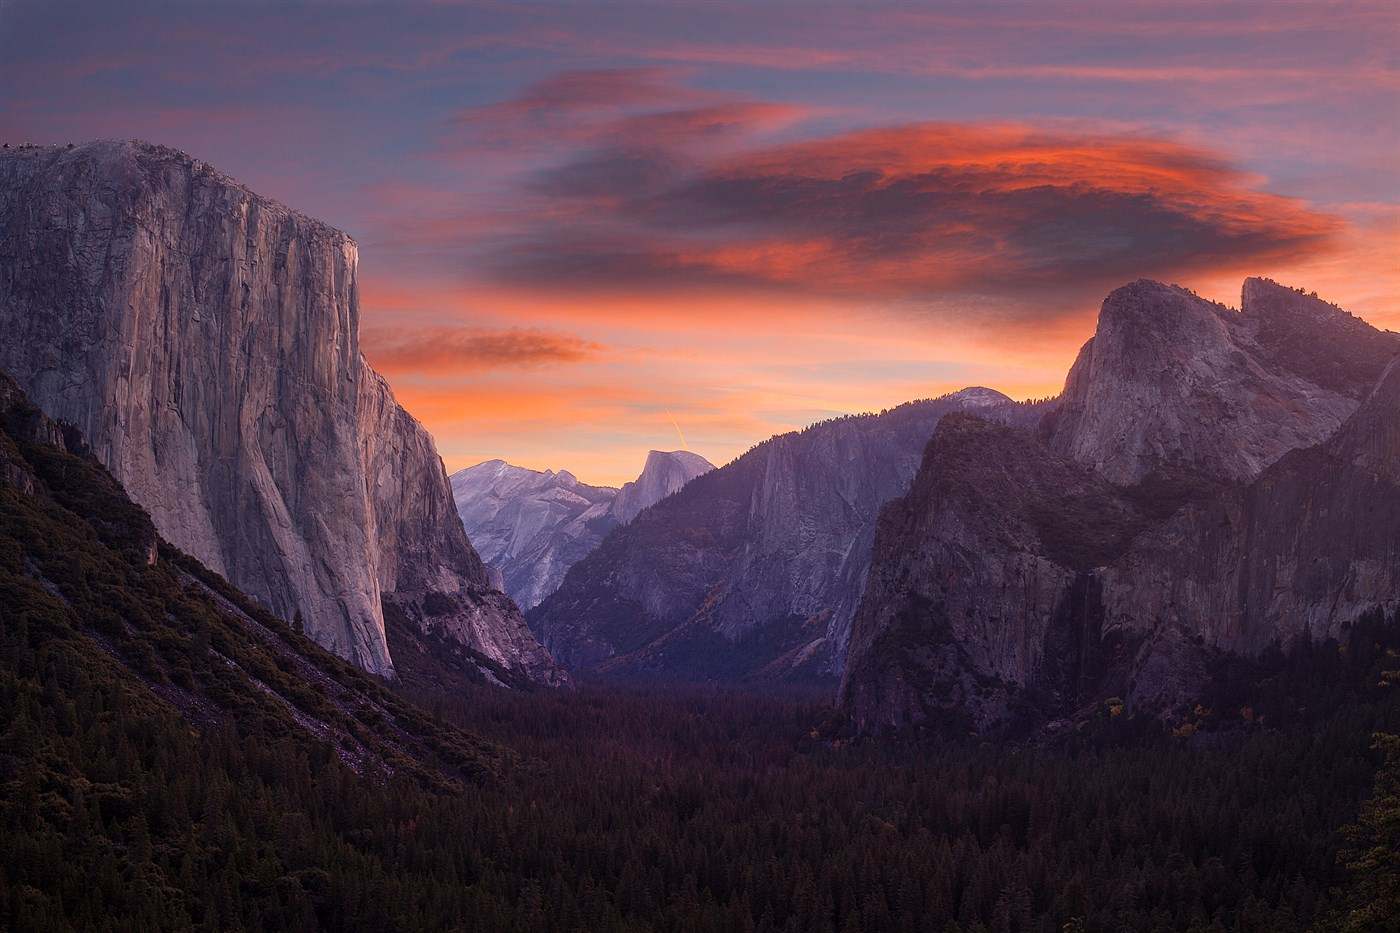 Sunrise in Yosemite, photo